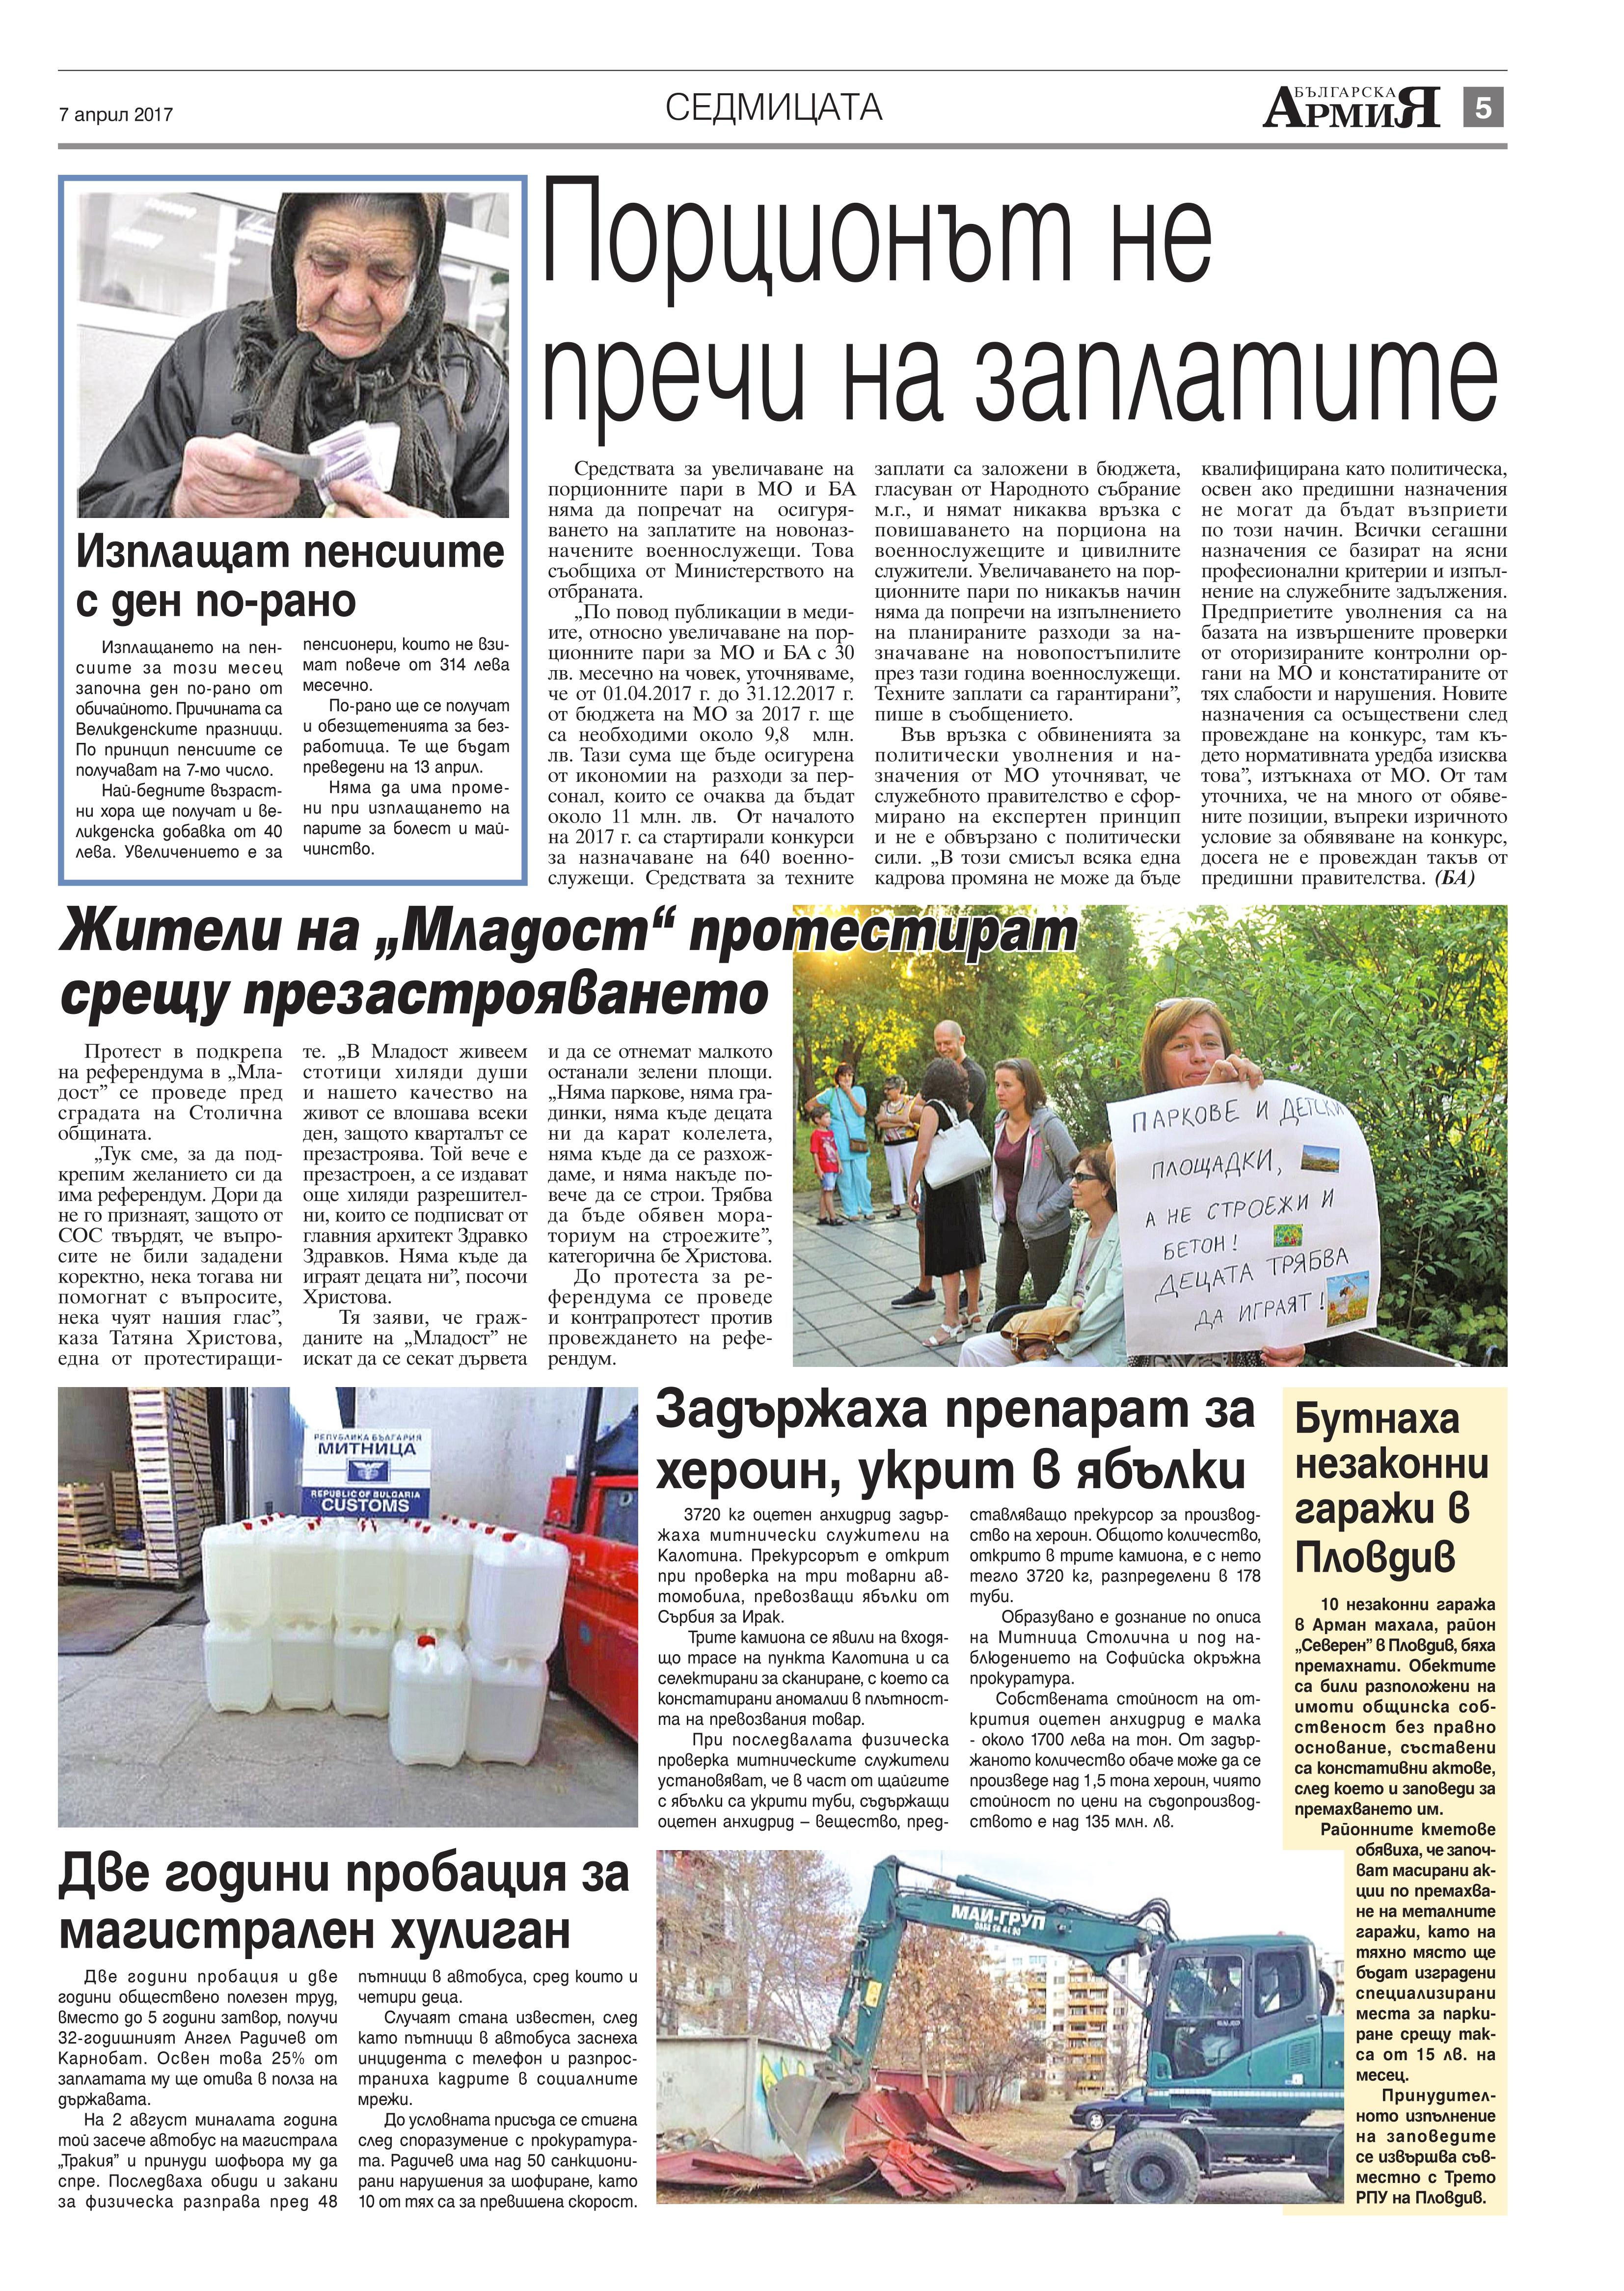 https://www.armymedia.bg/wp-content/uploads/2015/06/05.page1_-18.jpg